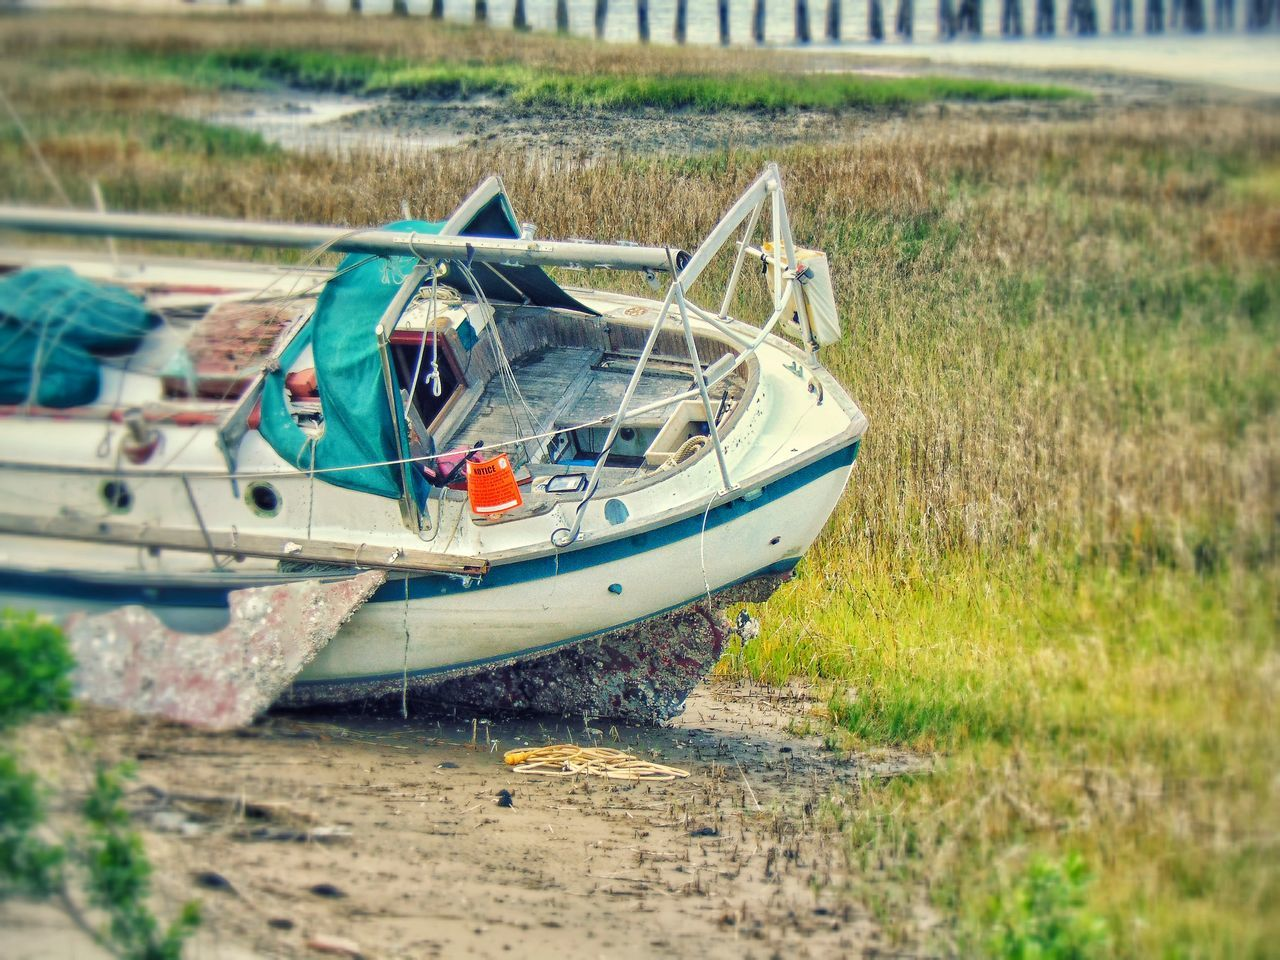 nautical vessel, transportation, boat, mode of transport, moored, water, day, outdoors, nature, beach, abandoned, no people, field, grass, sea, outrigger, beauty in nature, sky